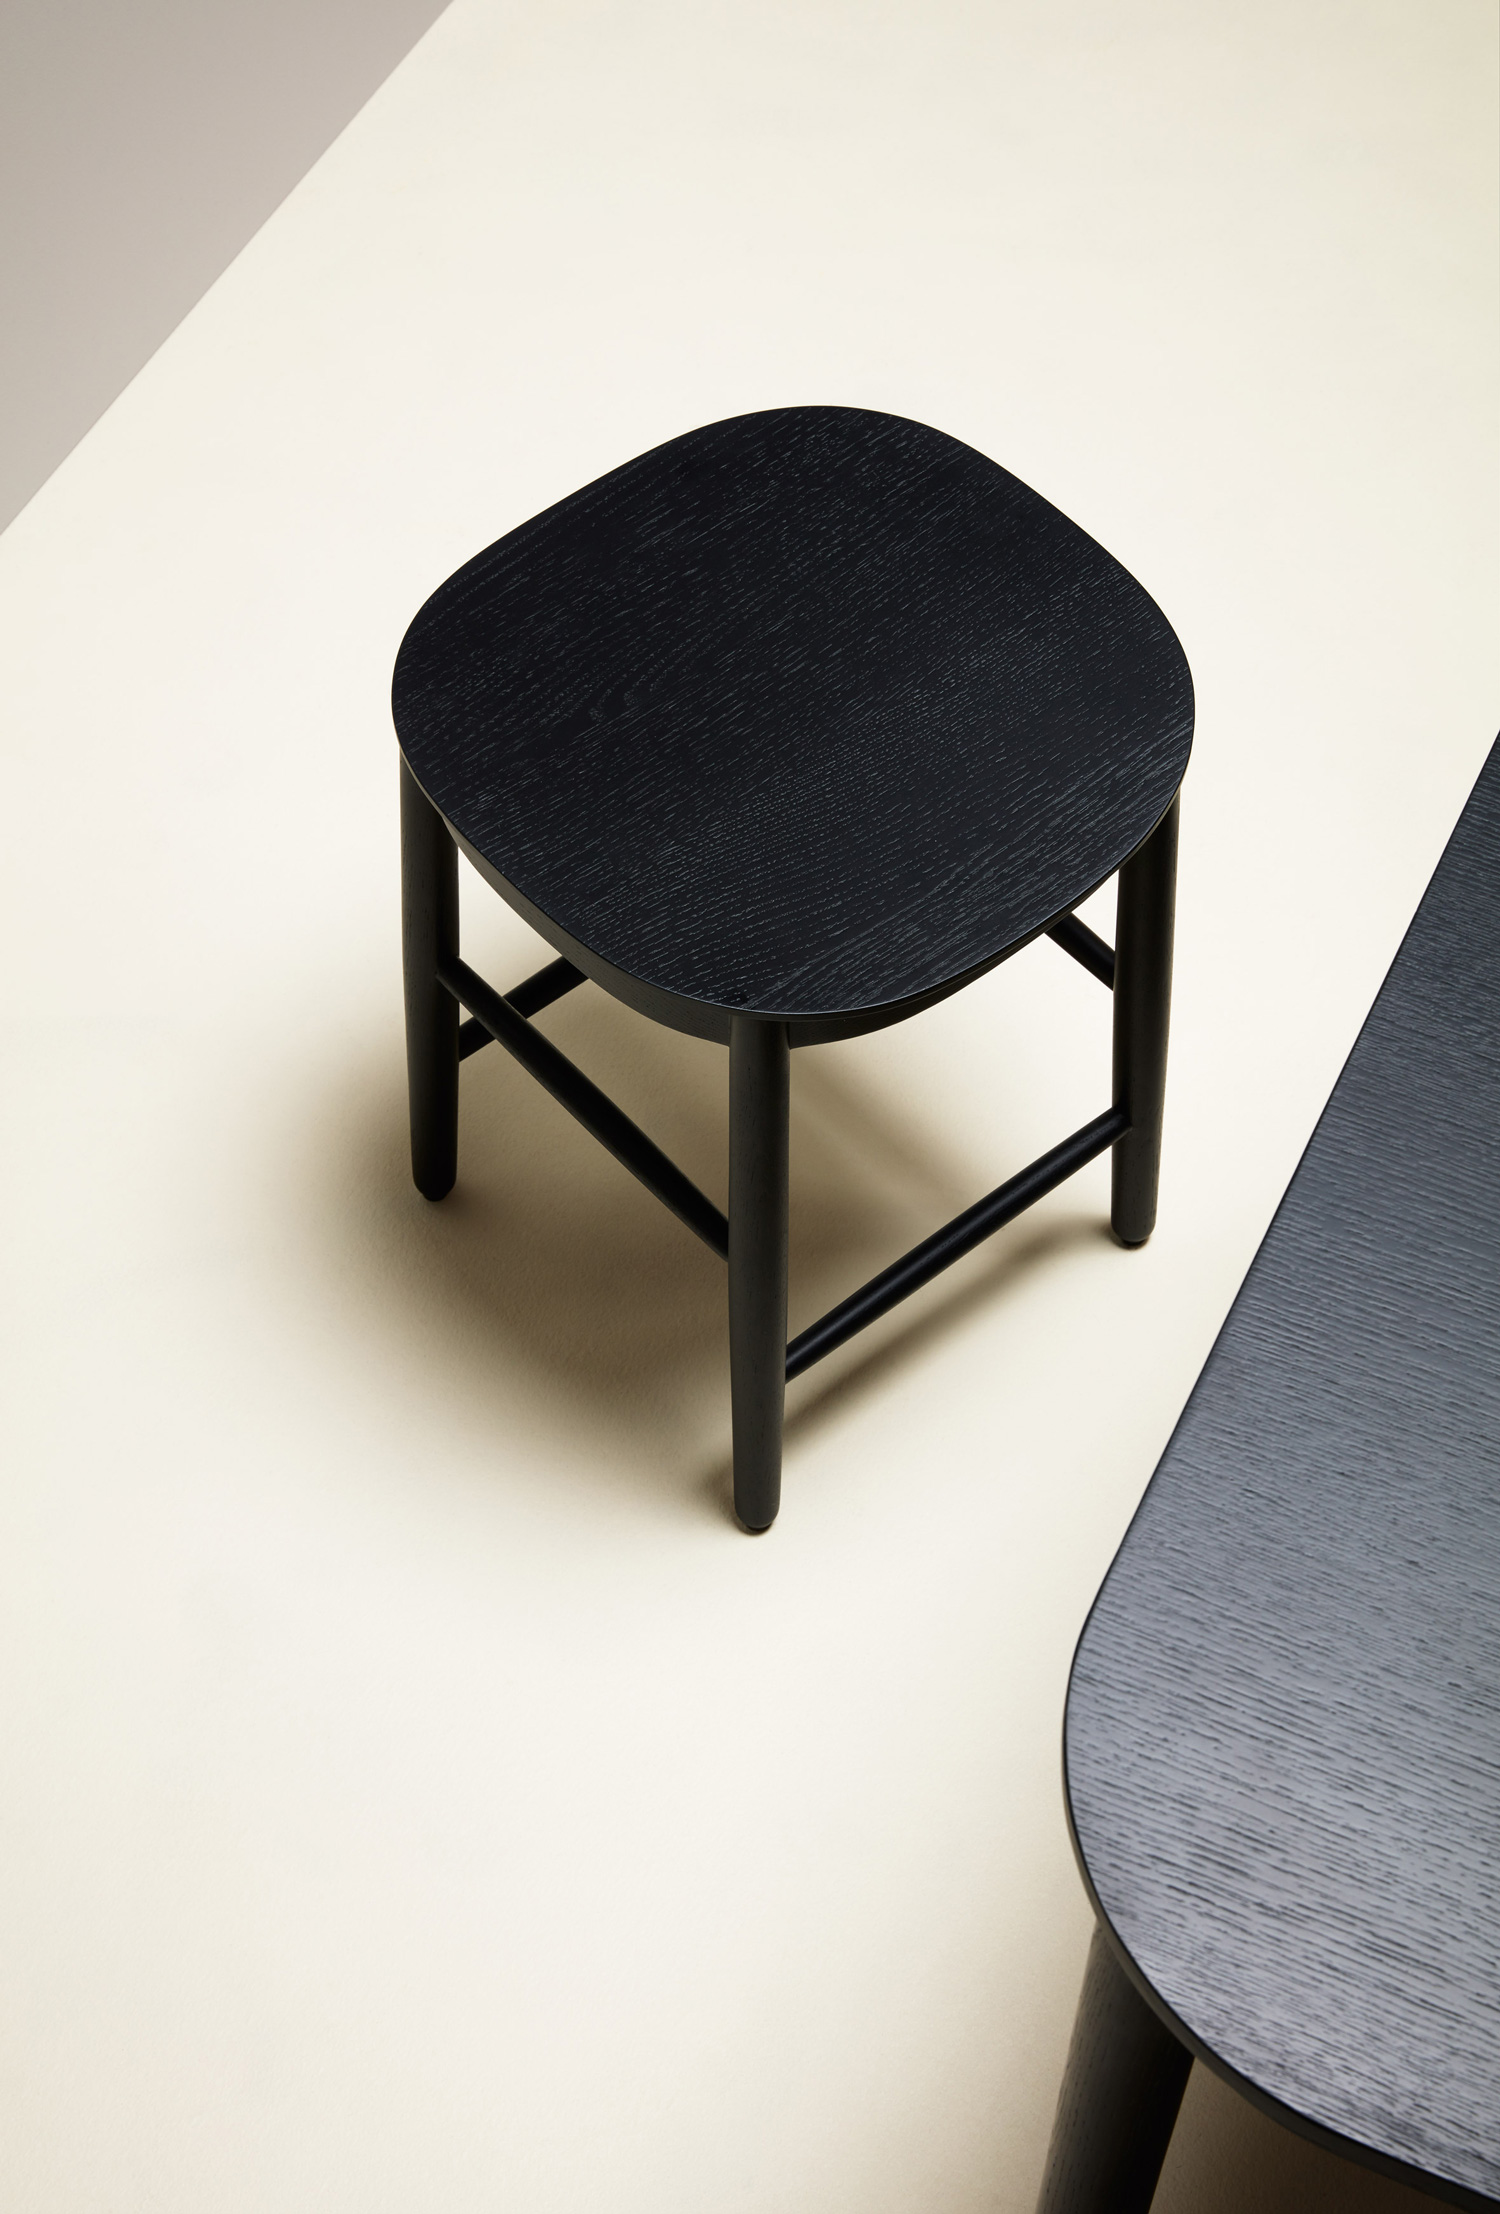 Stool by Note Design Studio for Fogia at Stockholm Furniture Fair 2017 | Yellowtrace